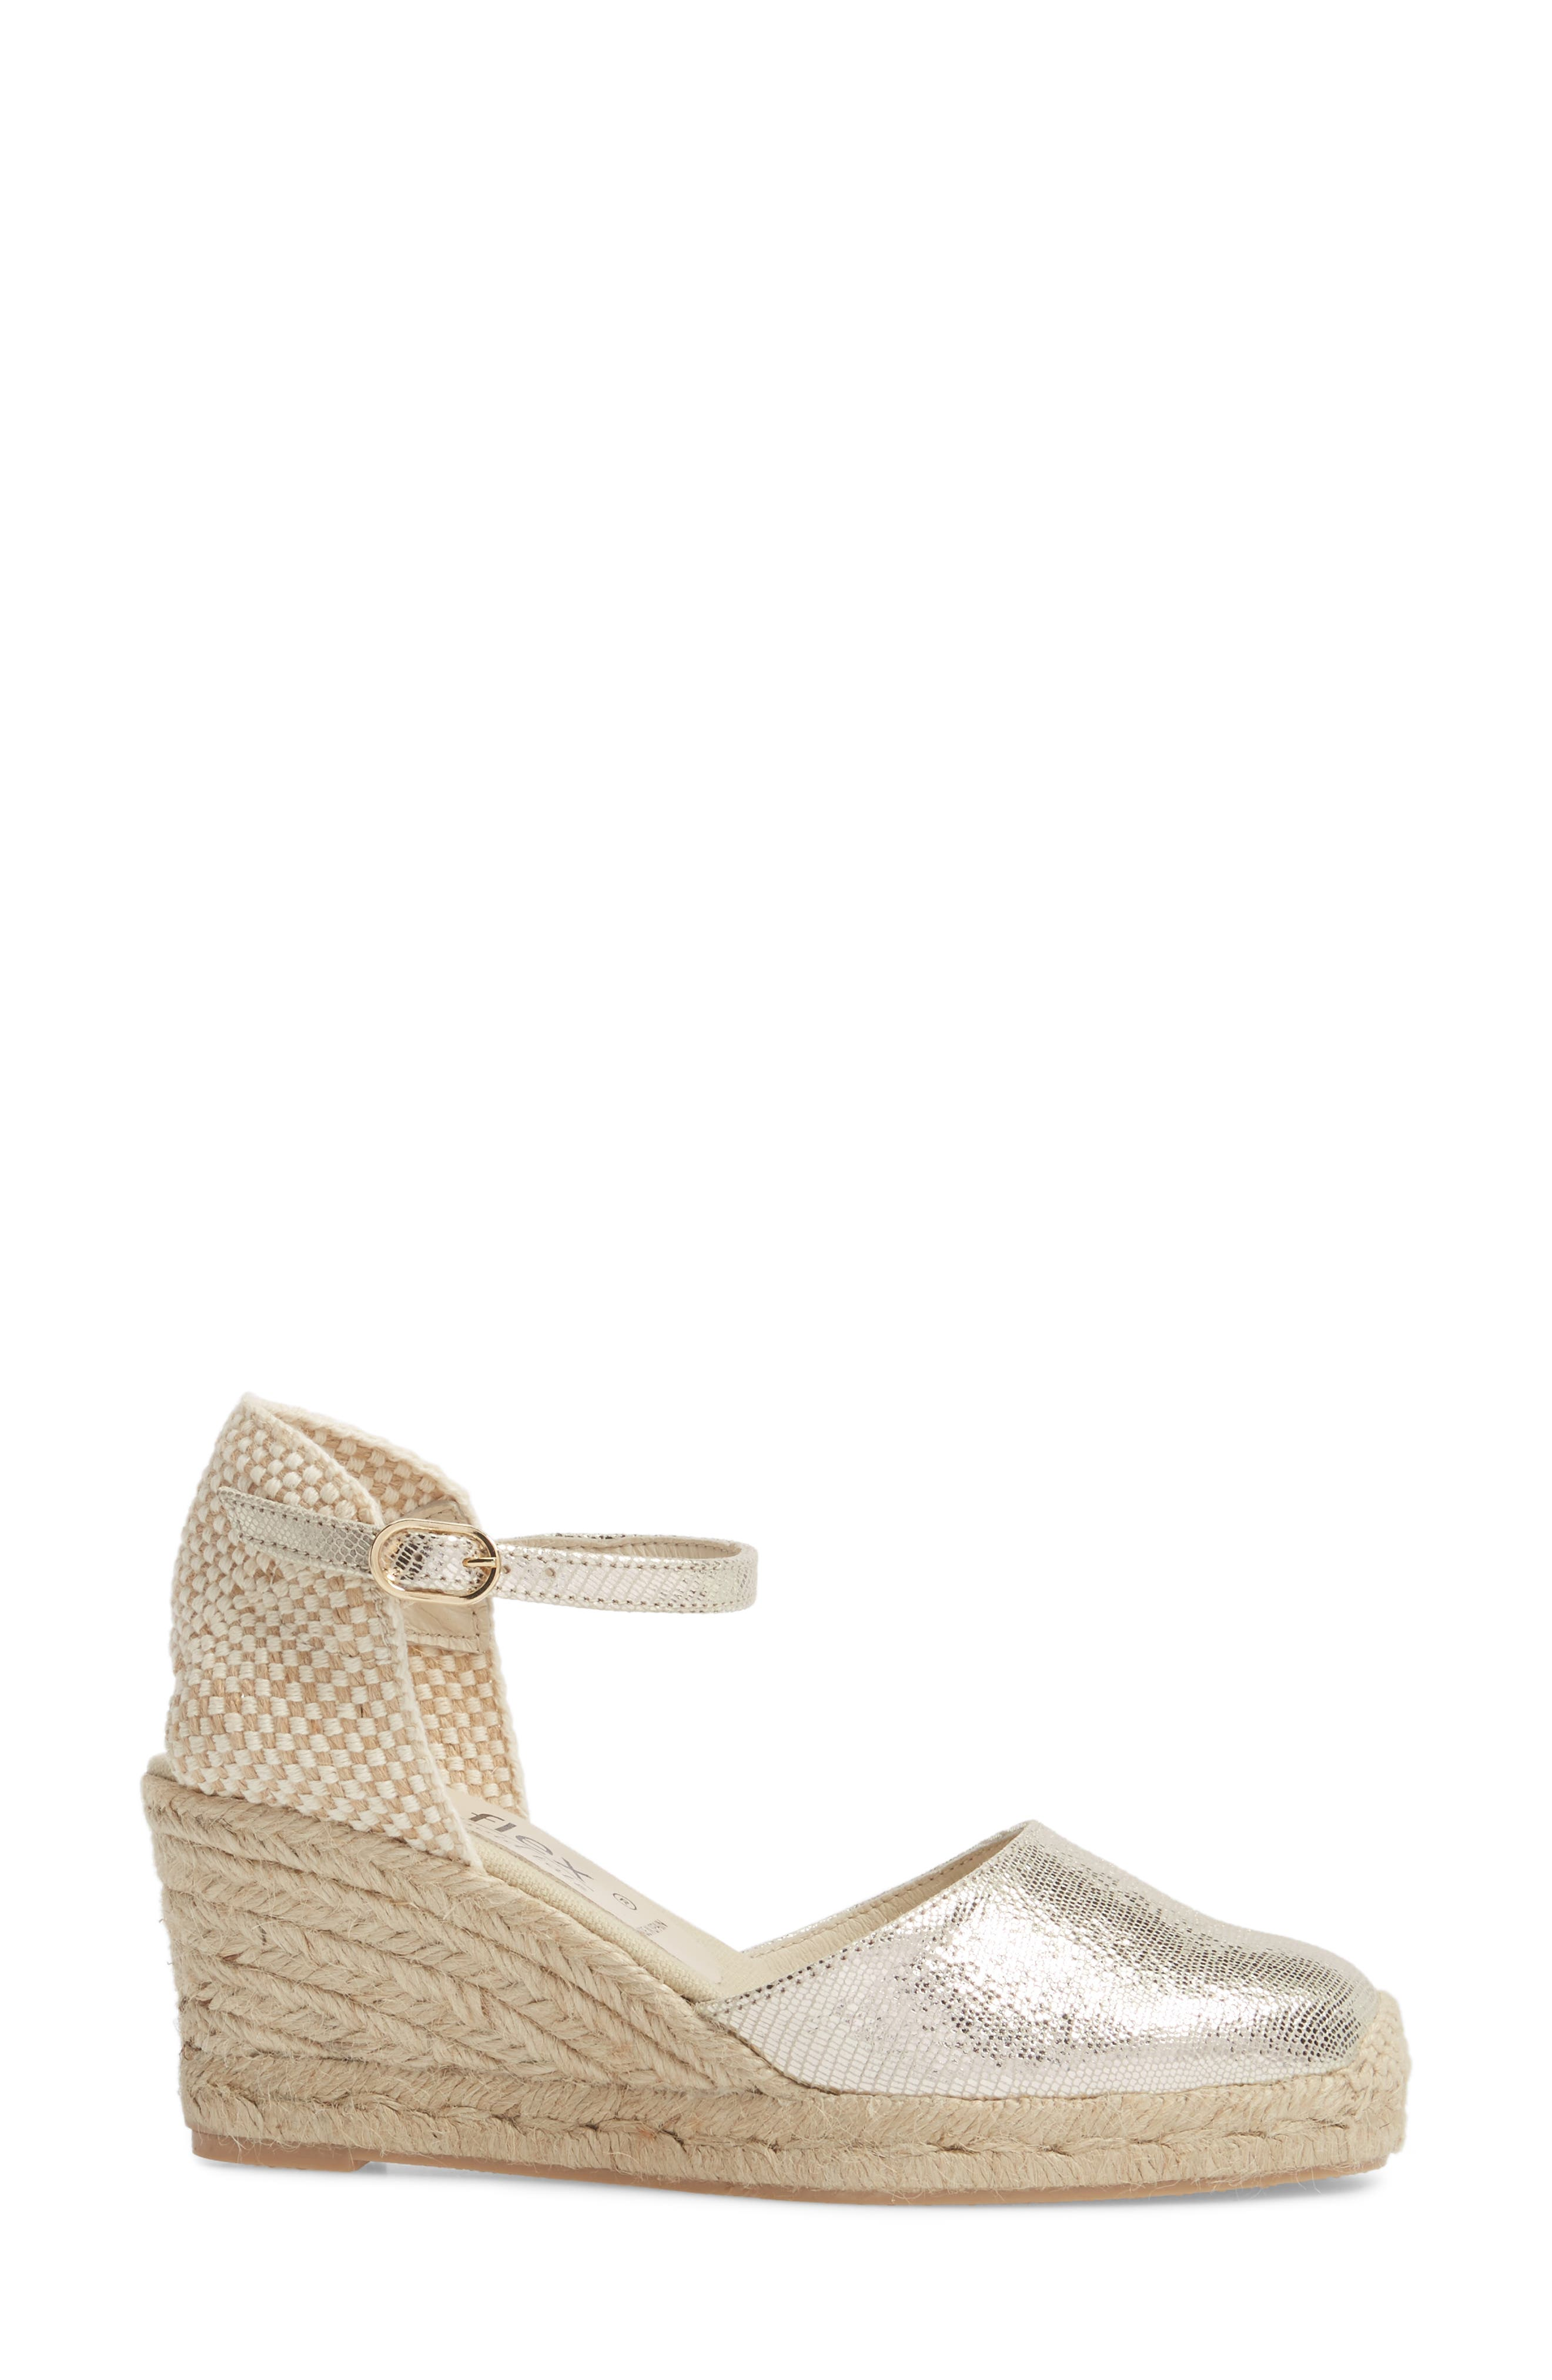 Europa Wedge Sandal,                             Alternate thumbnail 3, color,                             Gold Lizard Printed Leather